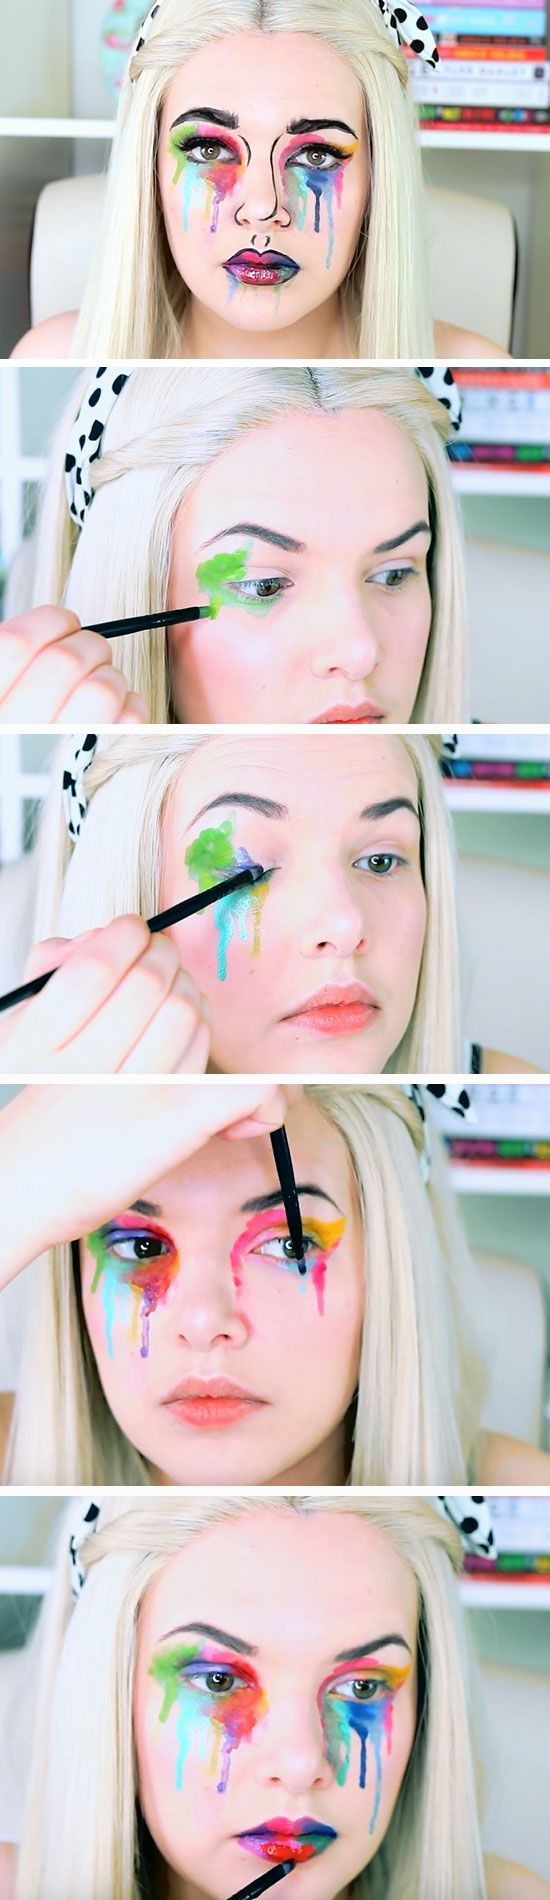 This is a recreation of mykie_ or Glam and Gore's makeup